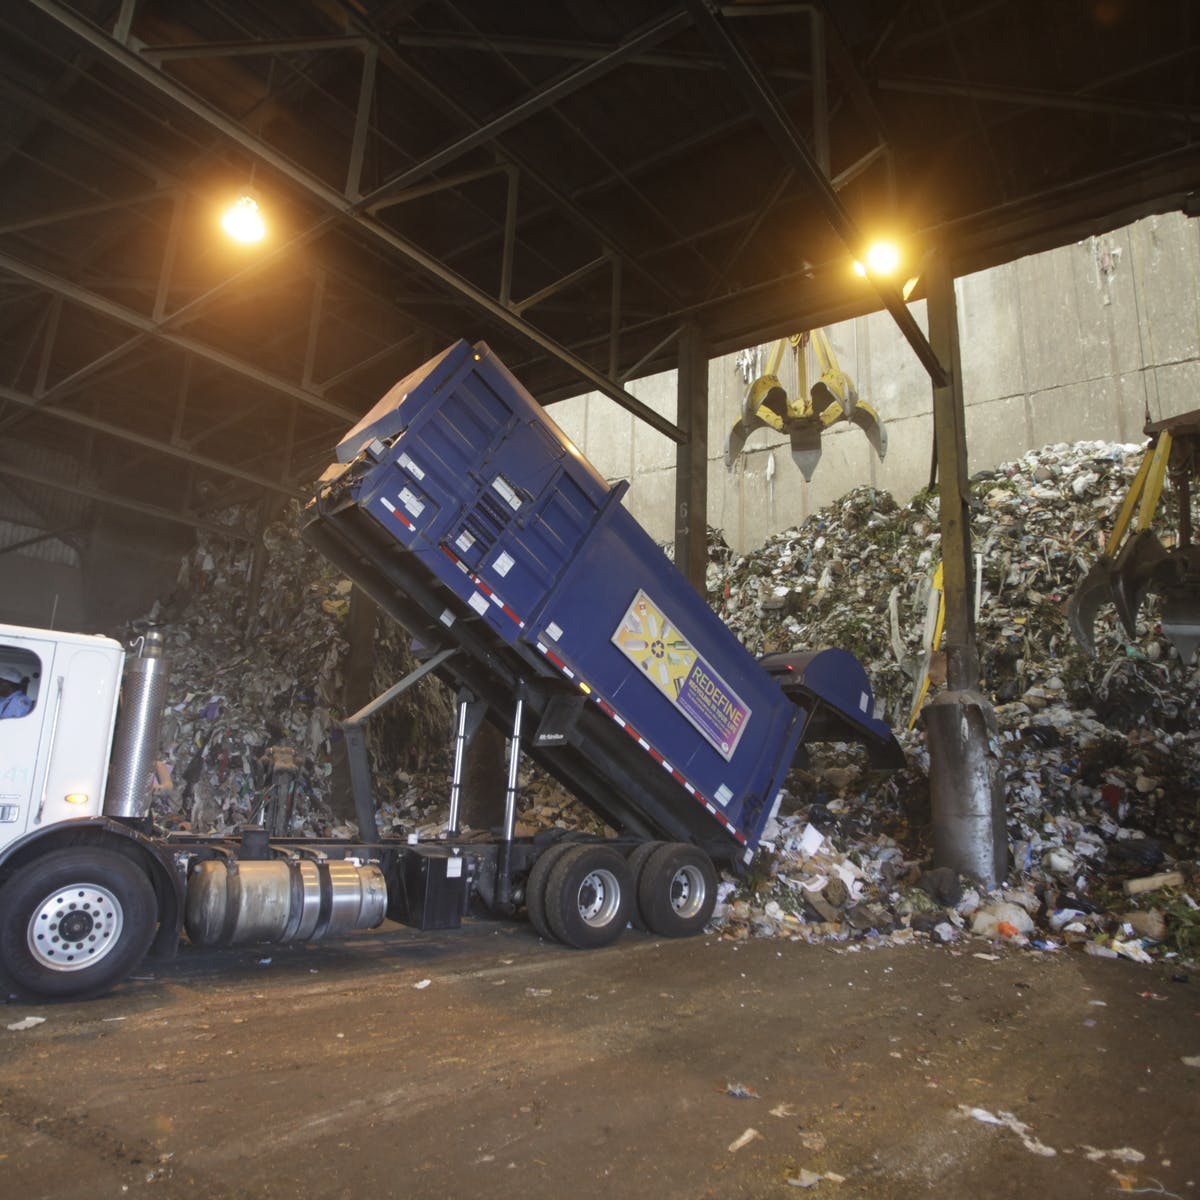 Garbage in, garbage out: Incinerating trash is not an effective way